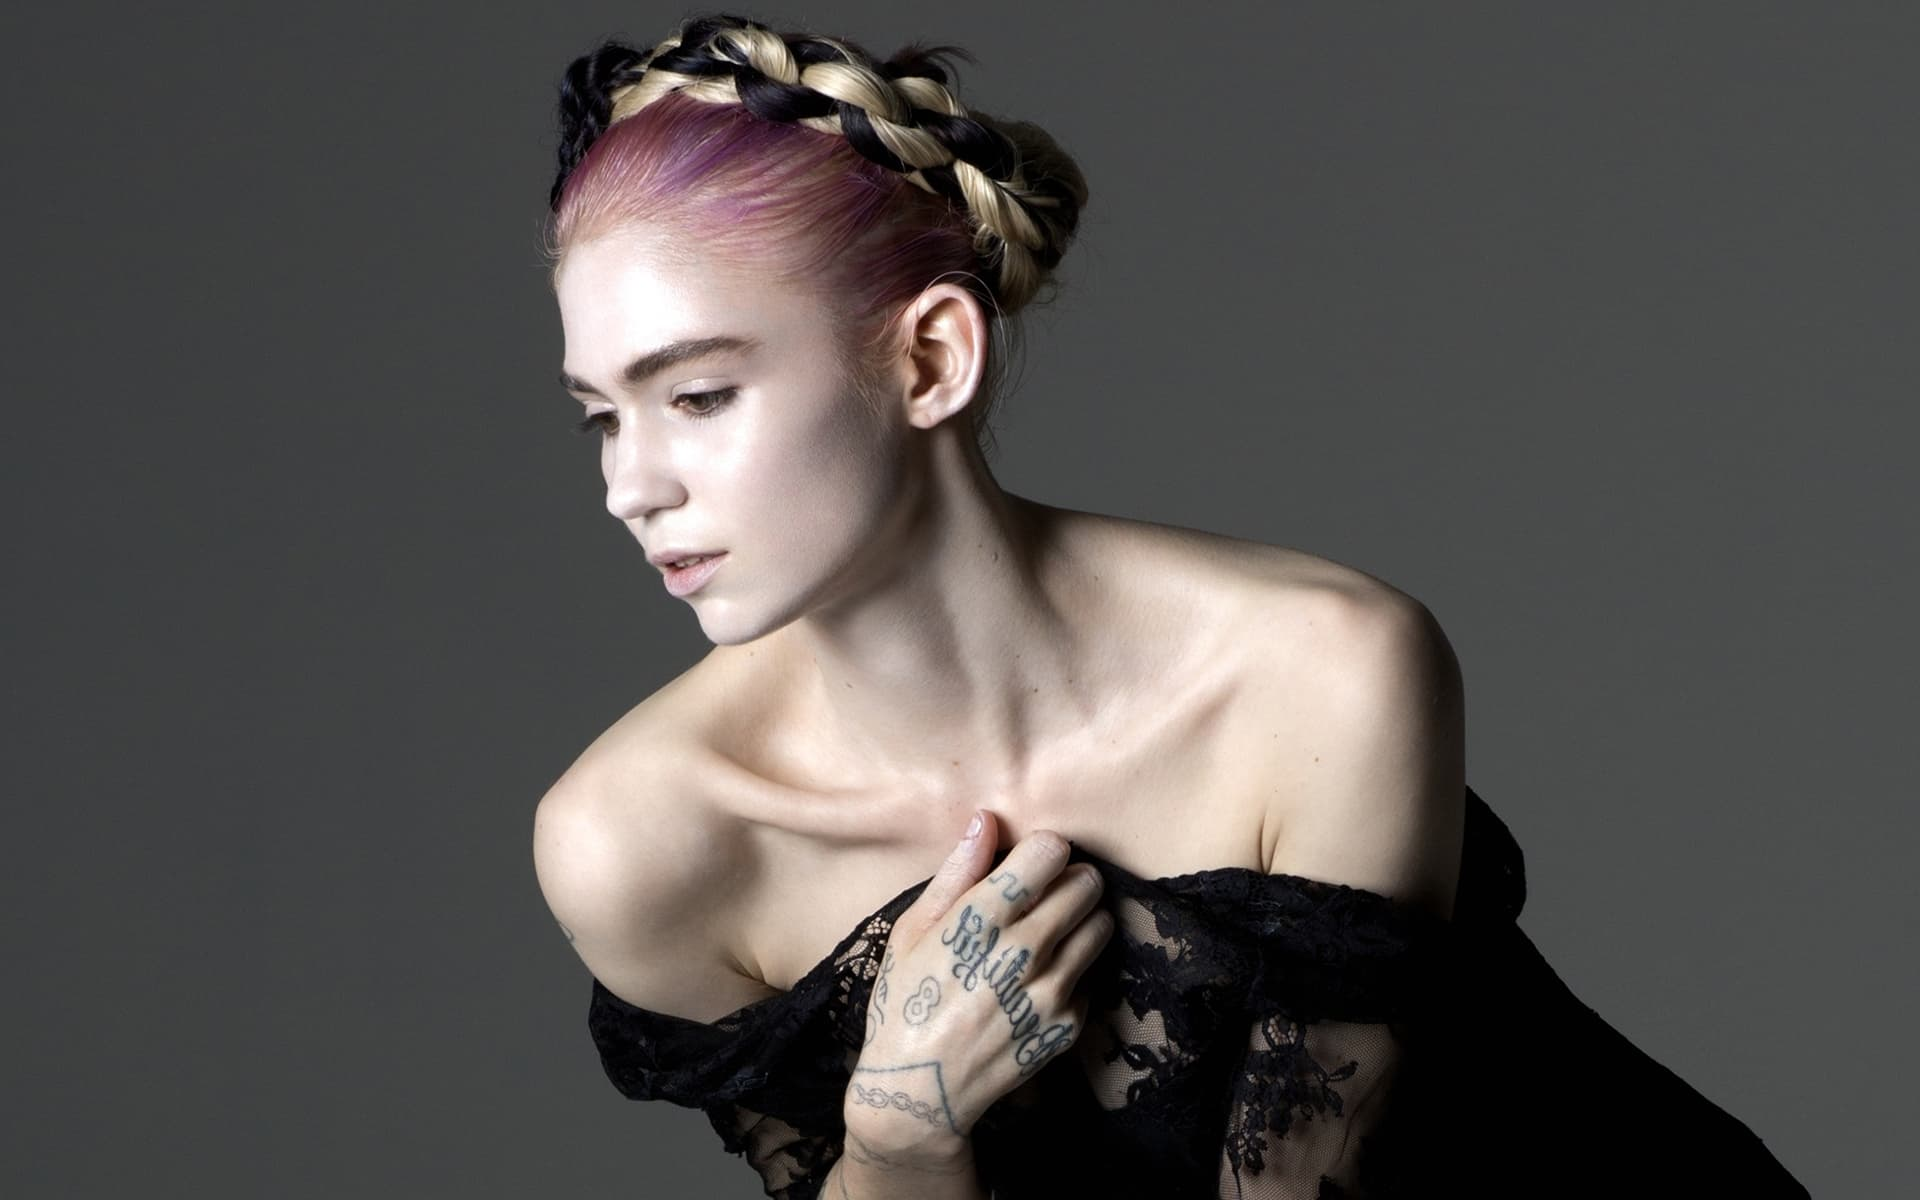 Grimes wallpapers HD High Quality Download: http://wallpapersqq.net/grimes-as-claire-boucher.html